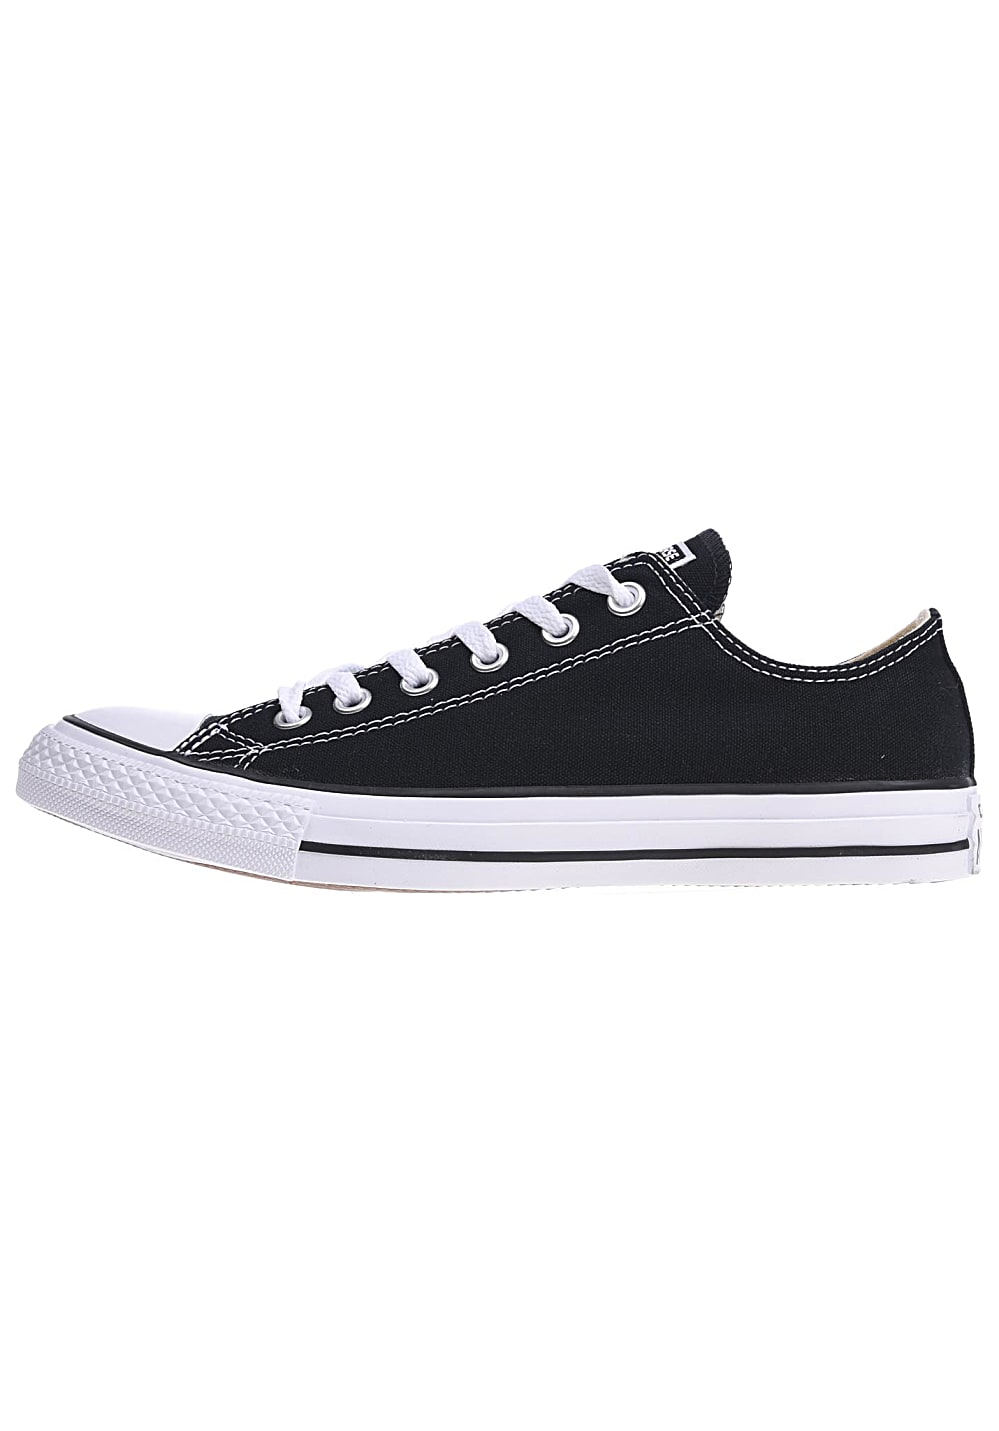 Converse All Star Ox - Sneaker - Schwarz - Planet Sports